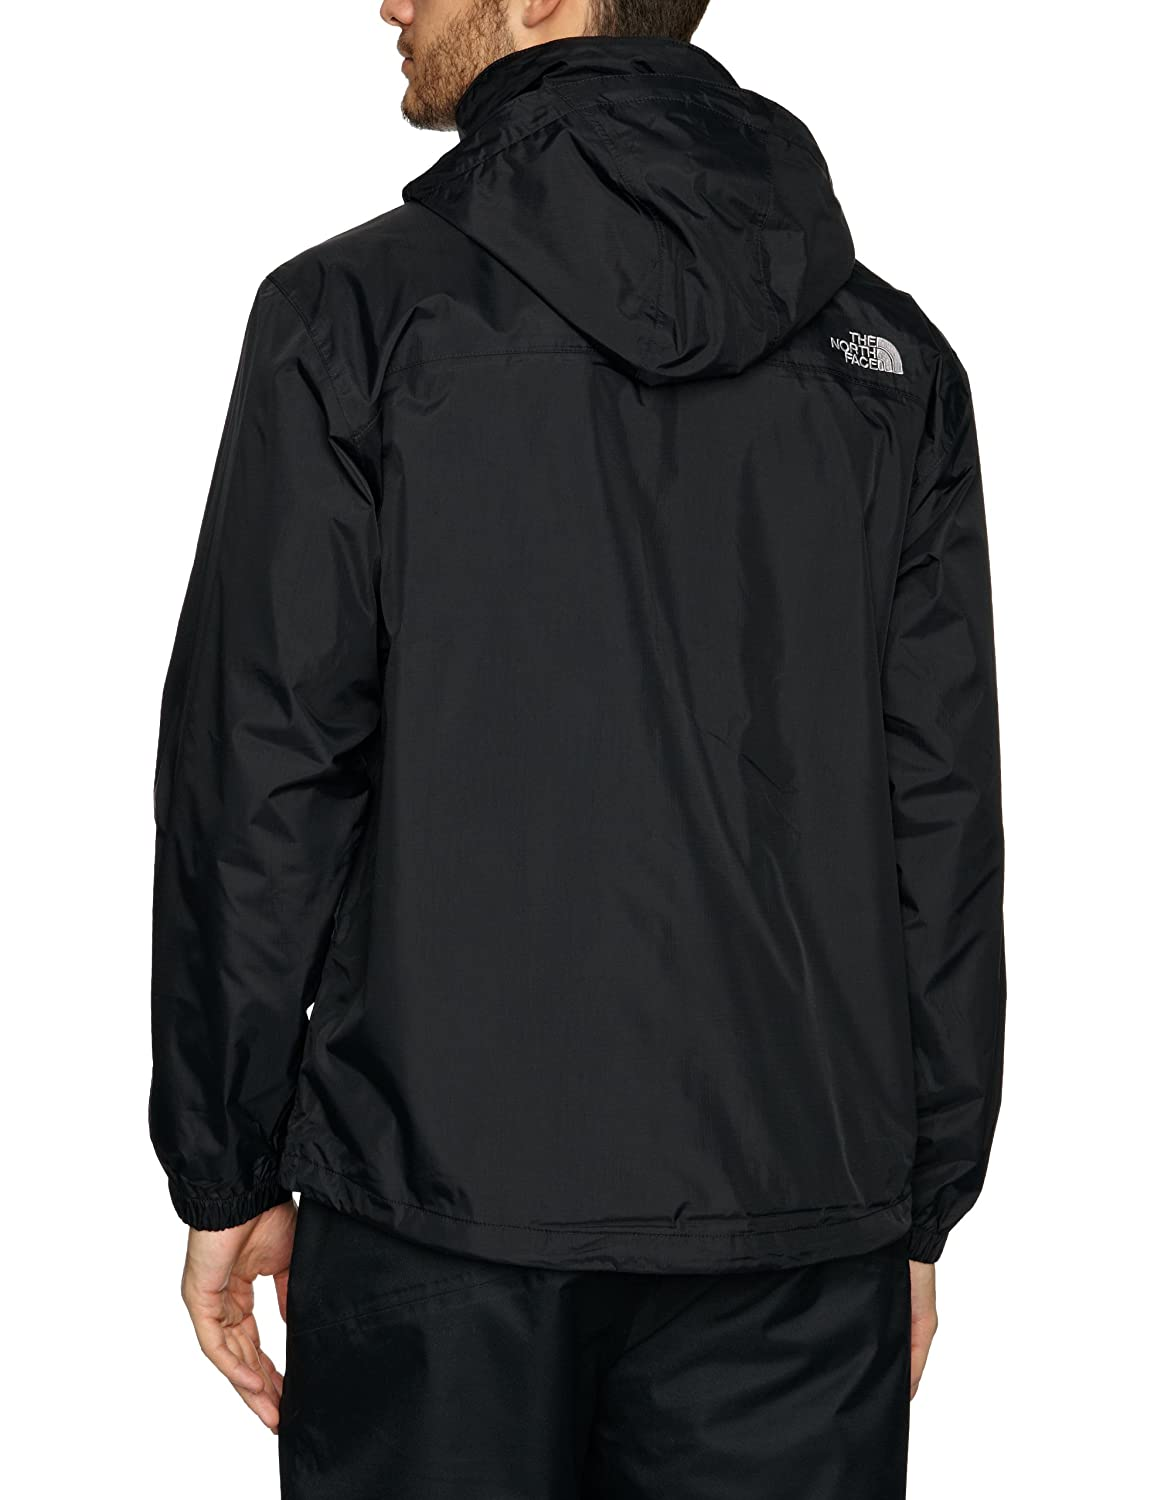 Find great deals on eBay for black rain jacket. Shop with confidence.